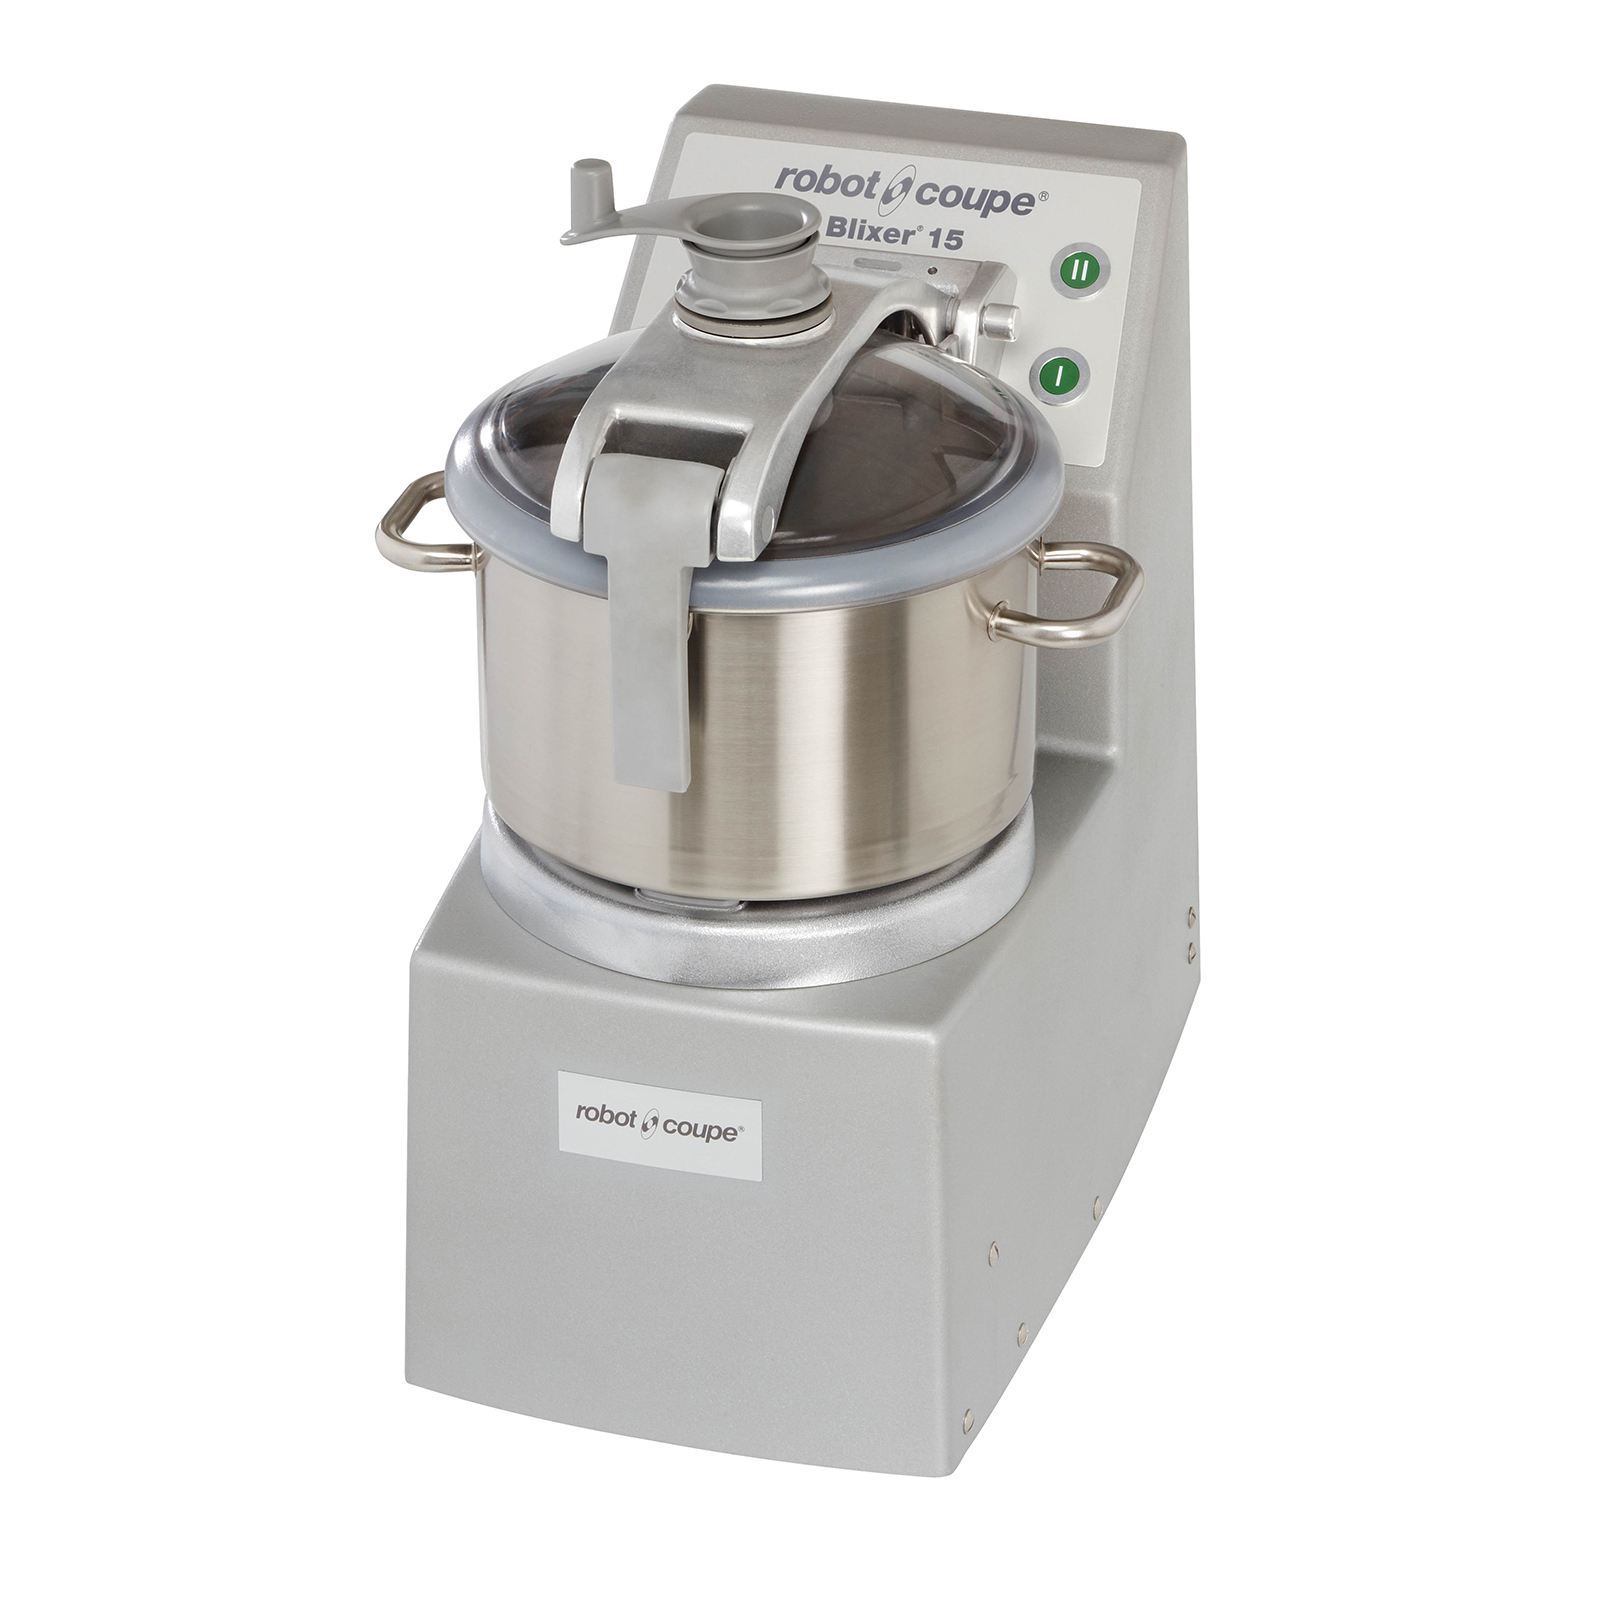 Robot Coupe BLIXER 15 food processor, benchtop / countertop